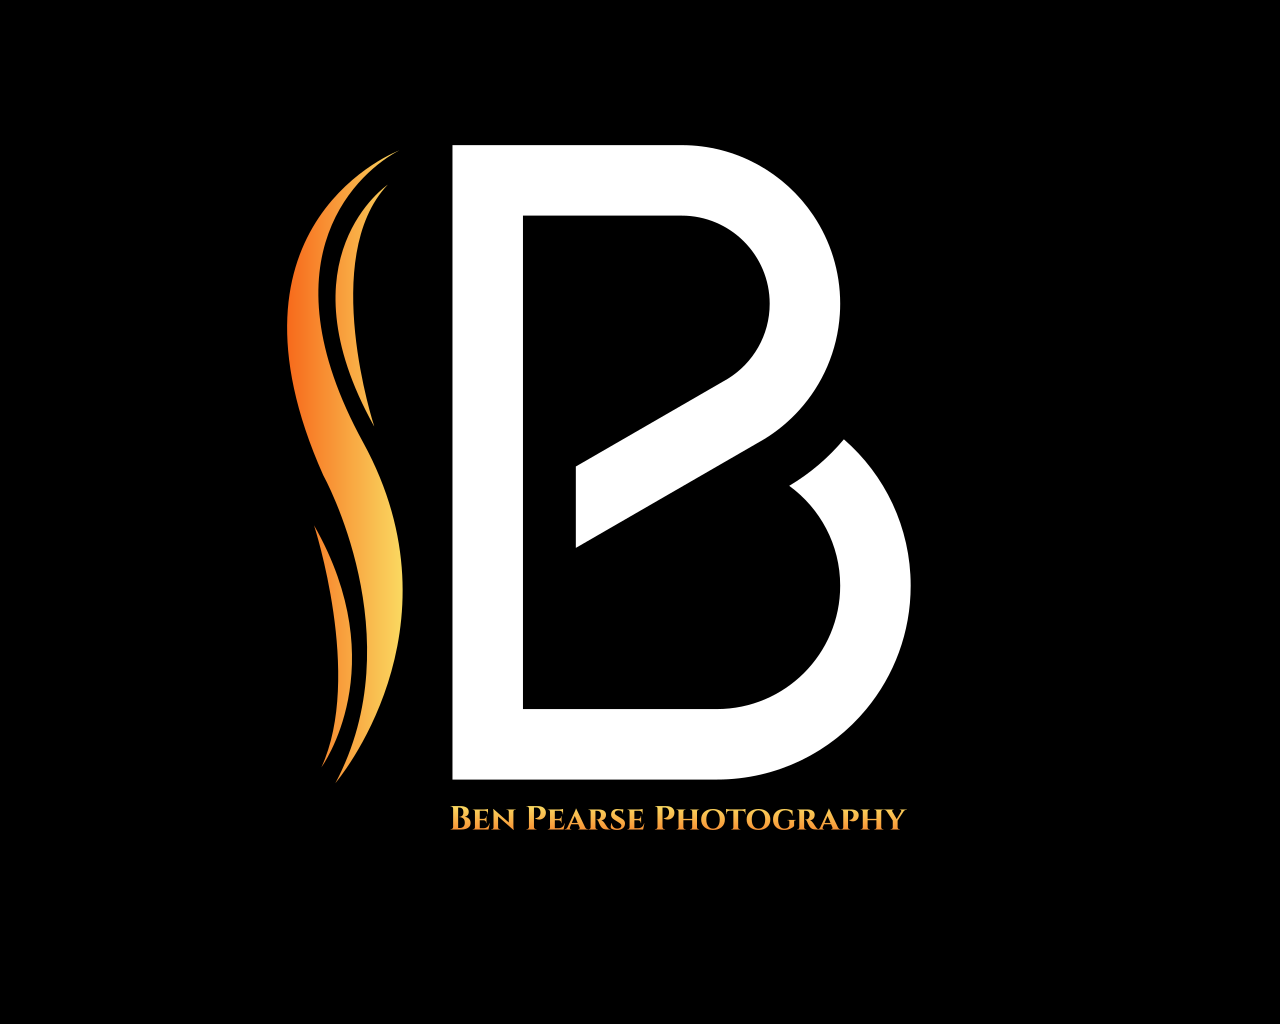 Ben Pearse Photography